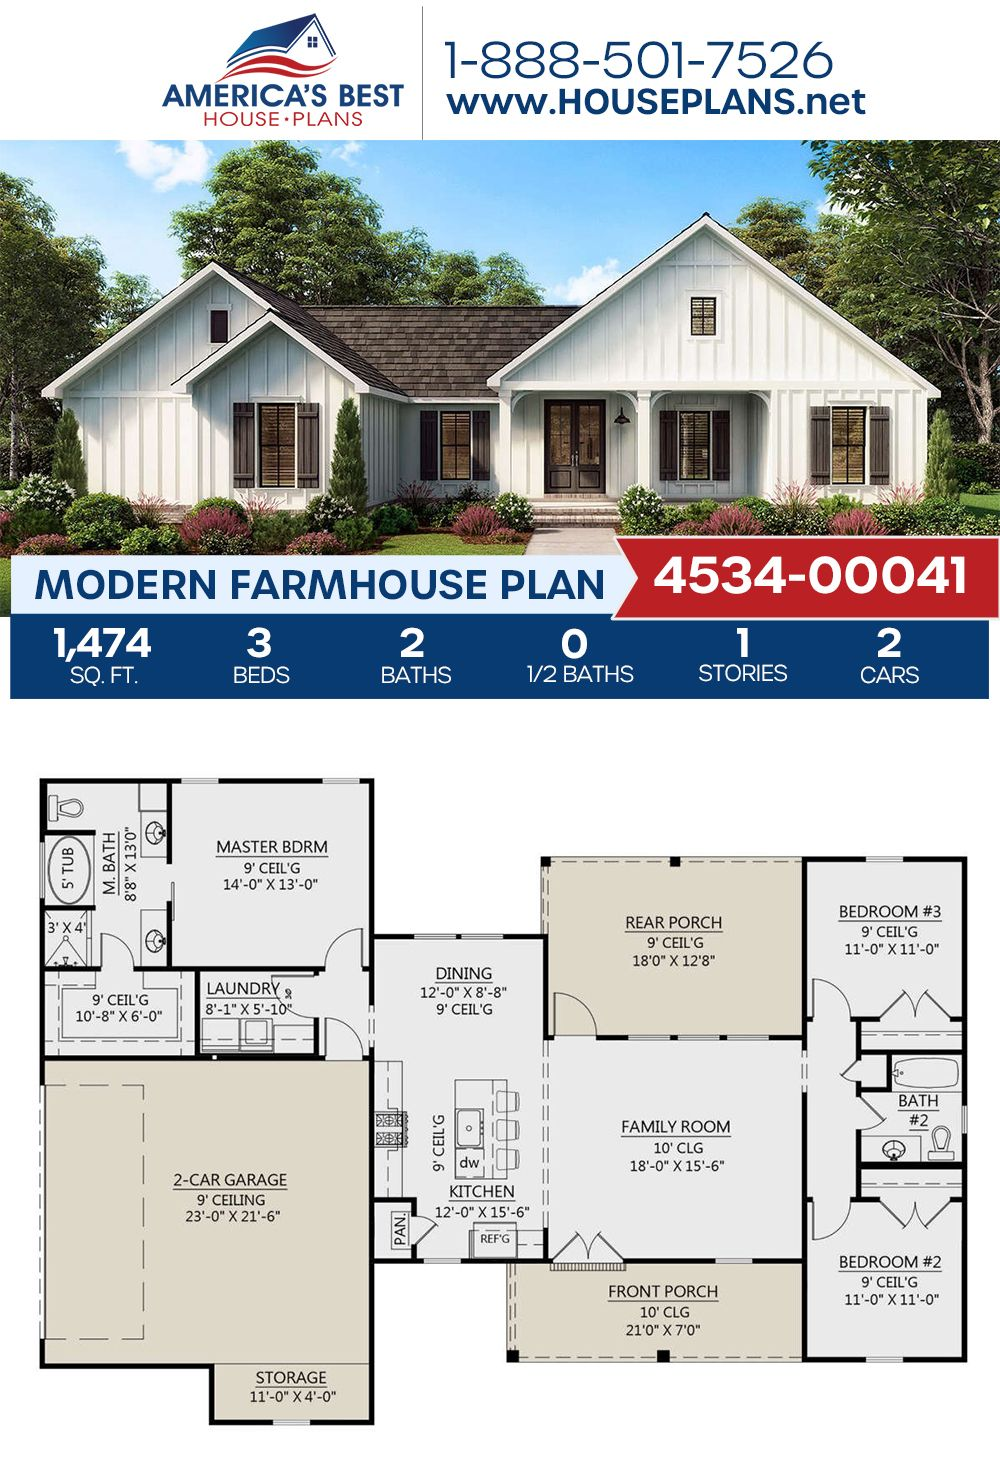 House Plan 4534 00041 Modern Farmhouse Plan 1 474 Square Feet 3 Bedrooms 2 Bathrooms Modern Farmhouse Plans House Plans Farmhouse Affordable House Plans